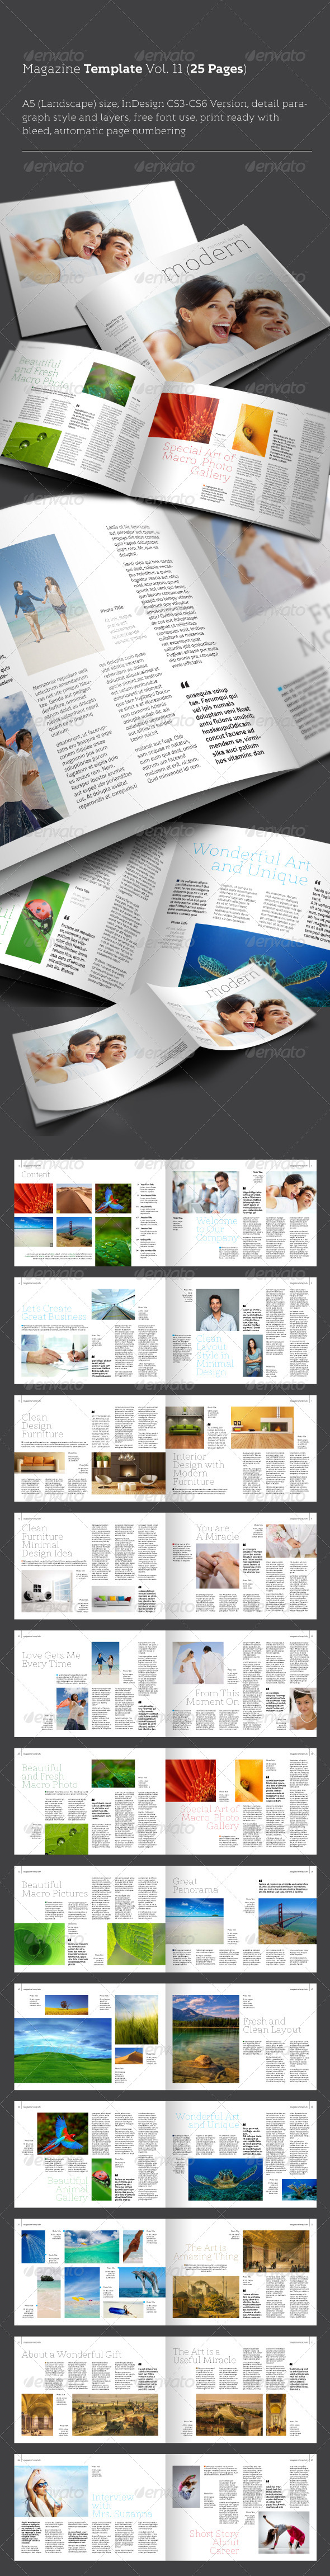 GraphicRiver InDesign Magazine Template Vol 11 25 Pages 4414358